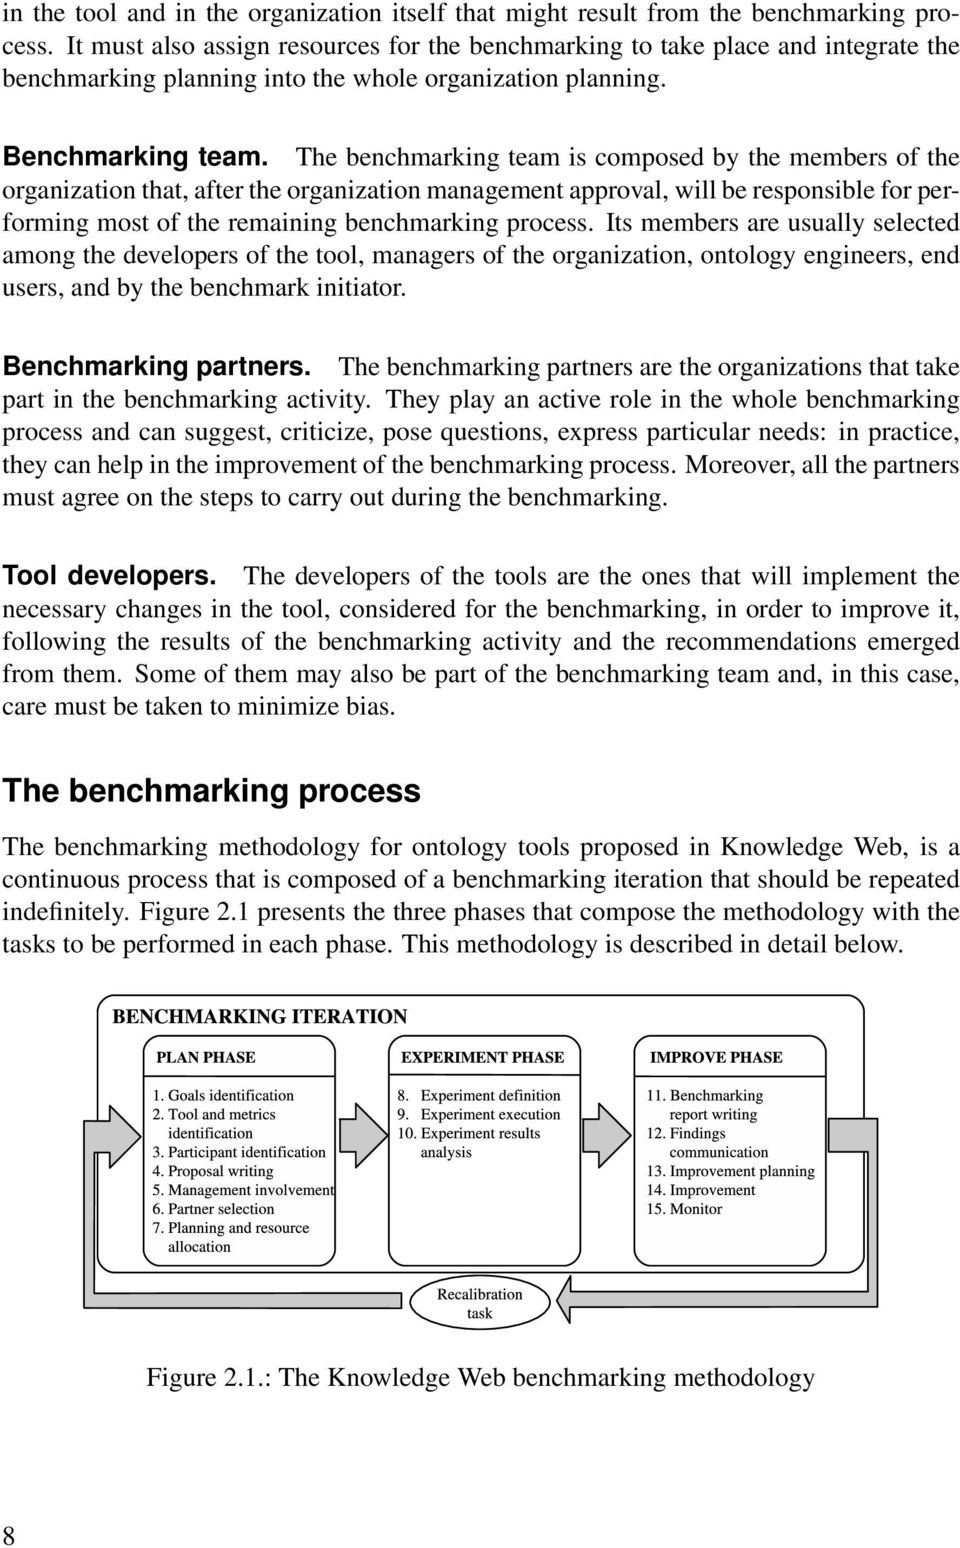 The benchmarking team is composed by the members of the organization that, after the organization management approval, will be responsible for performing most of the remaining benchmarking process.